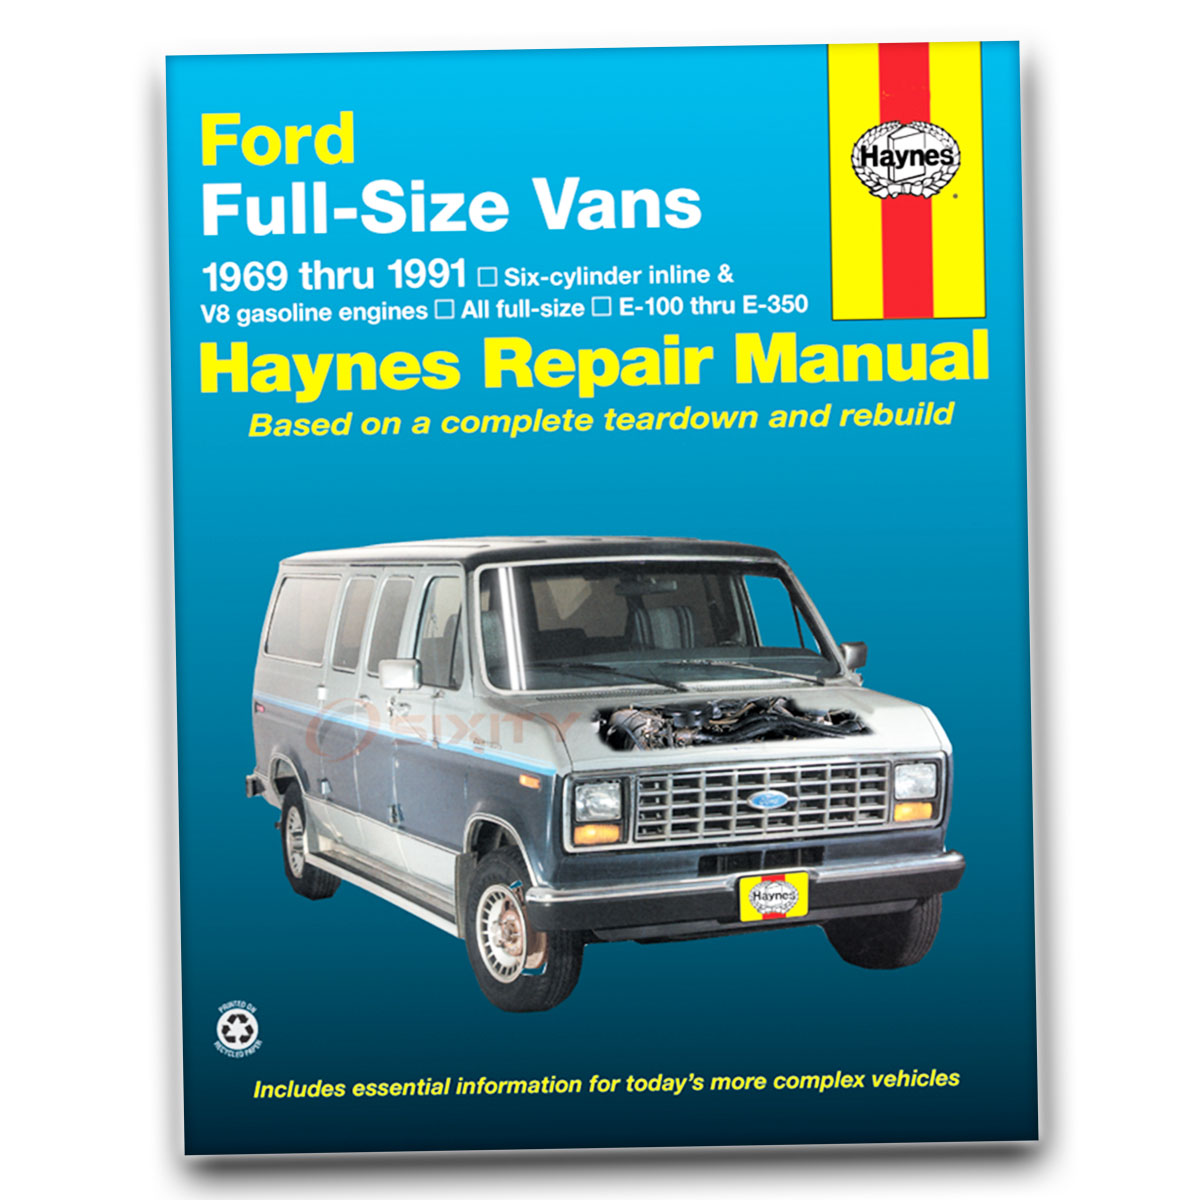 ford e econoline club wagon haynes repair manual chateau xl ford e 150 econoline club wagon haynes repair manual chateau xl xlt wh